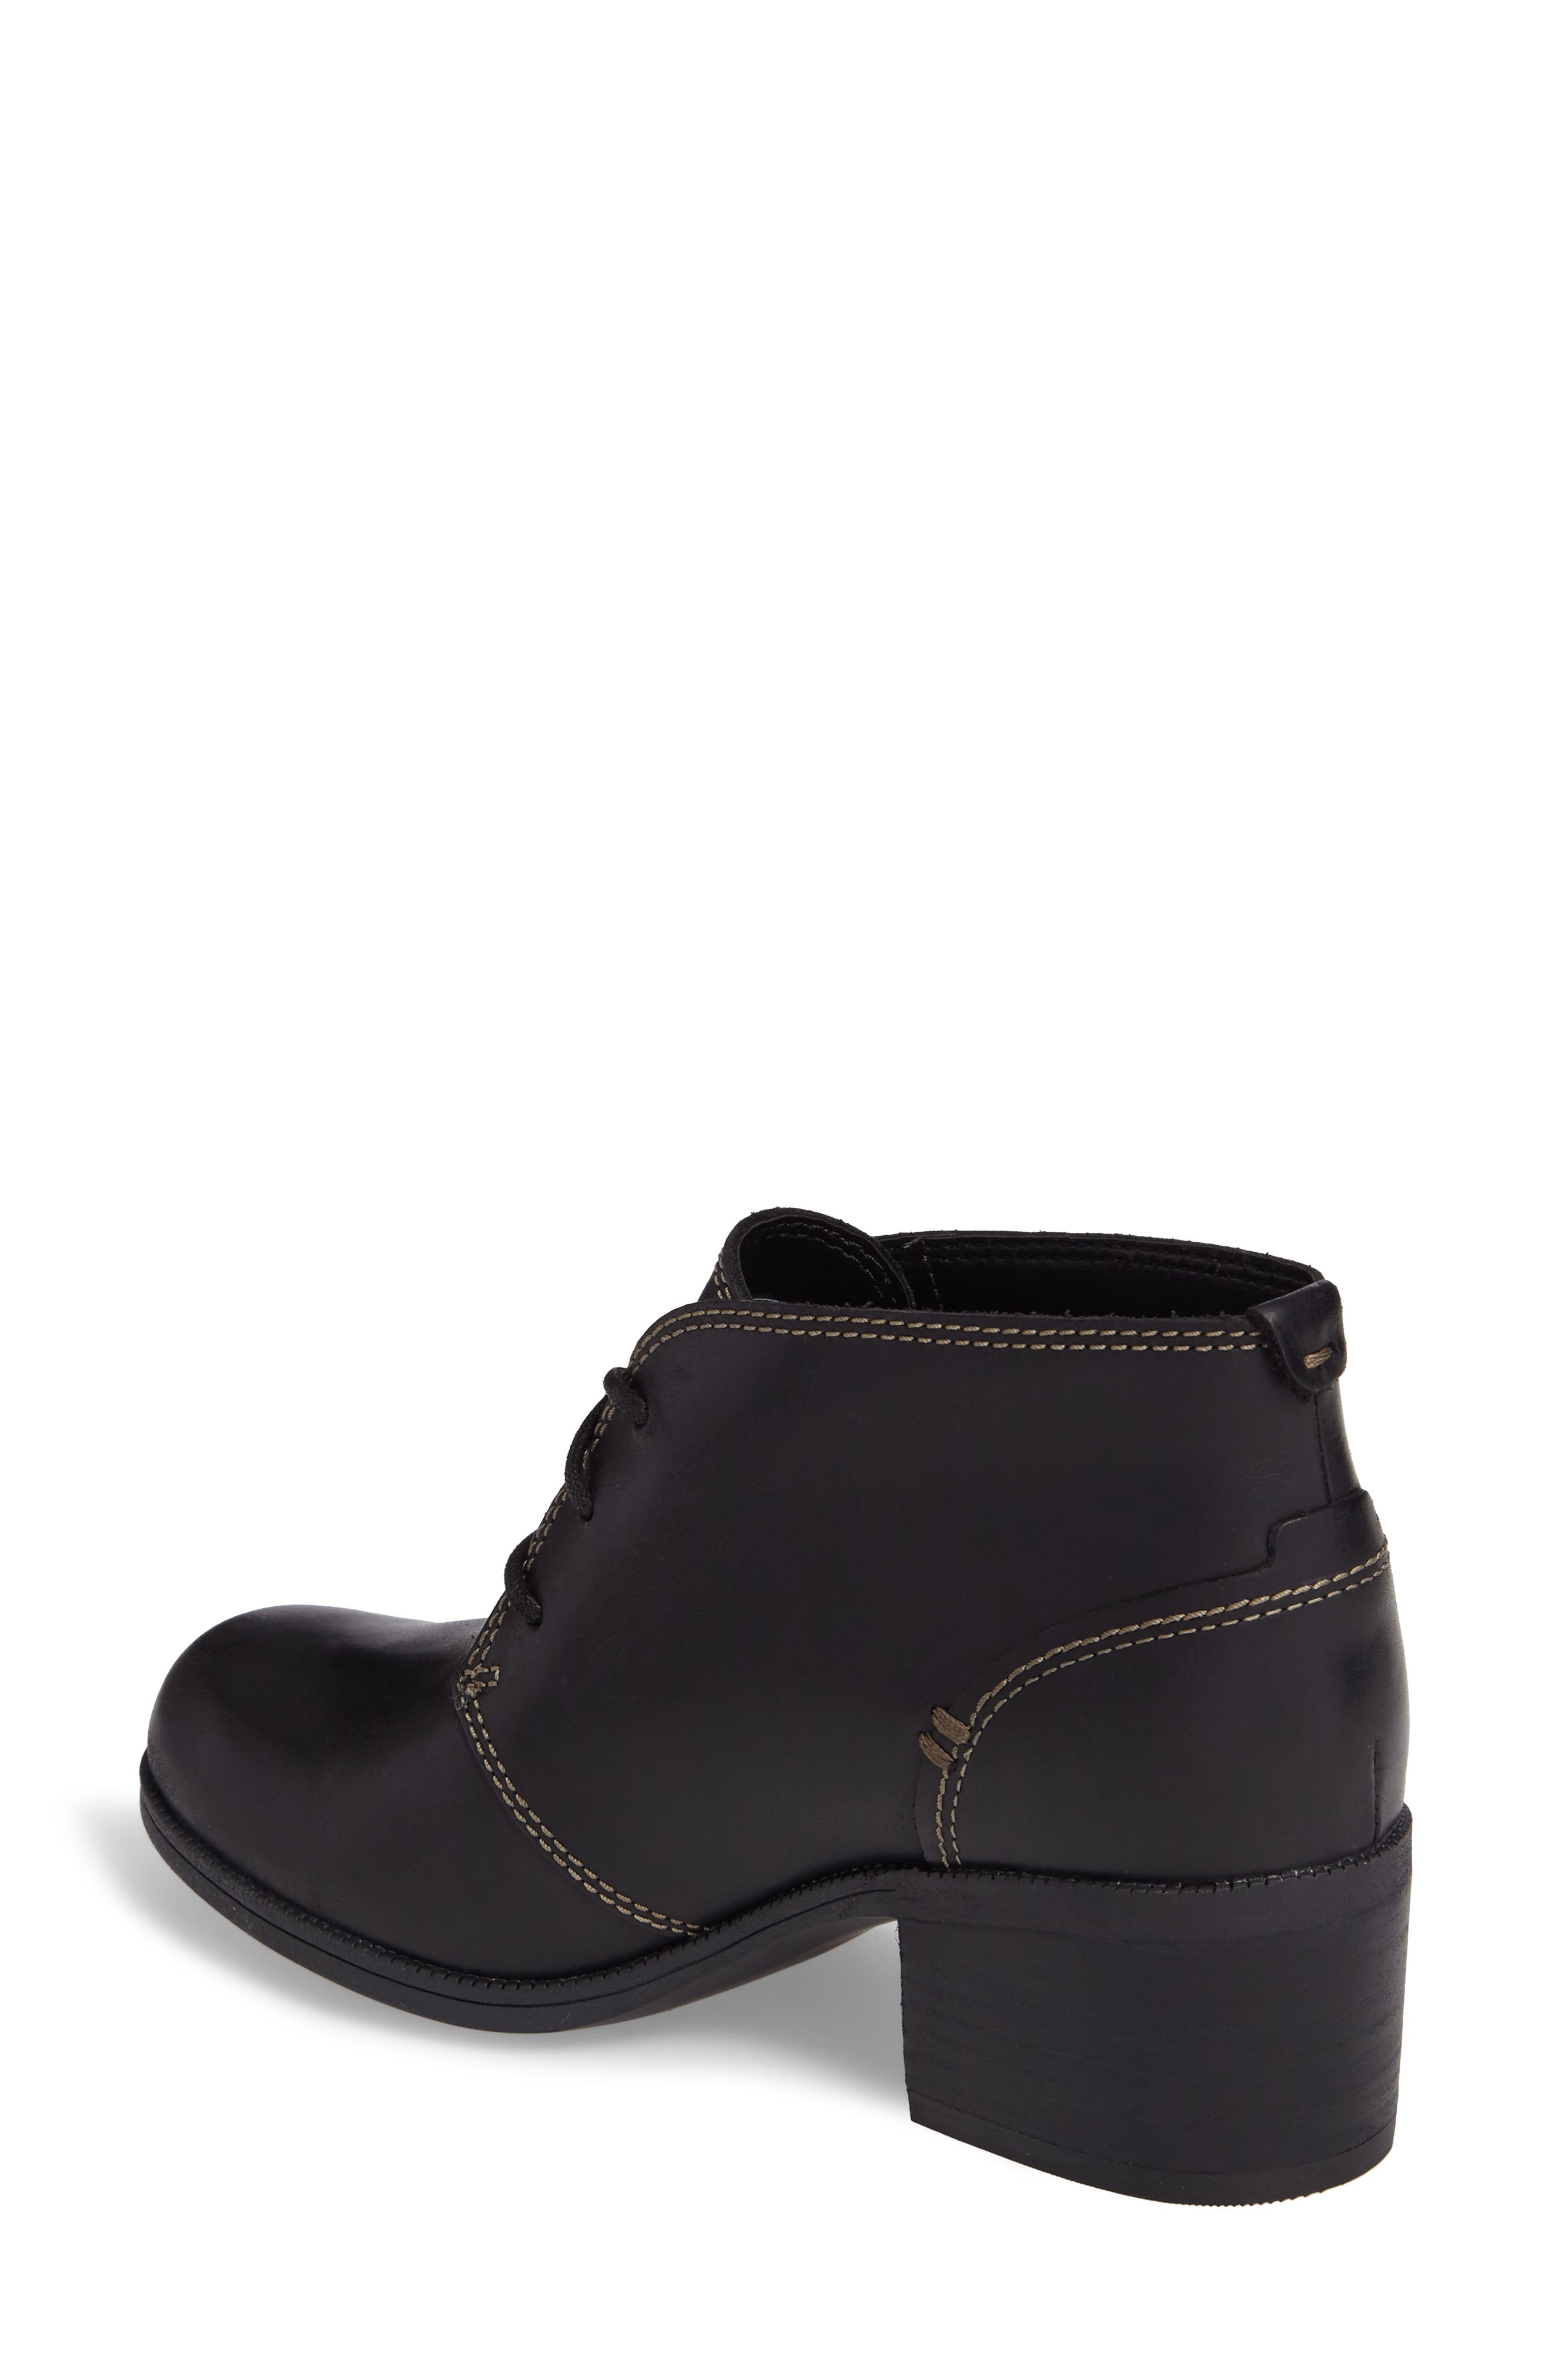 Maypearl Floral Boot,                             Alternate thumbnail 2, color,                             001